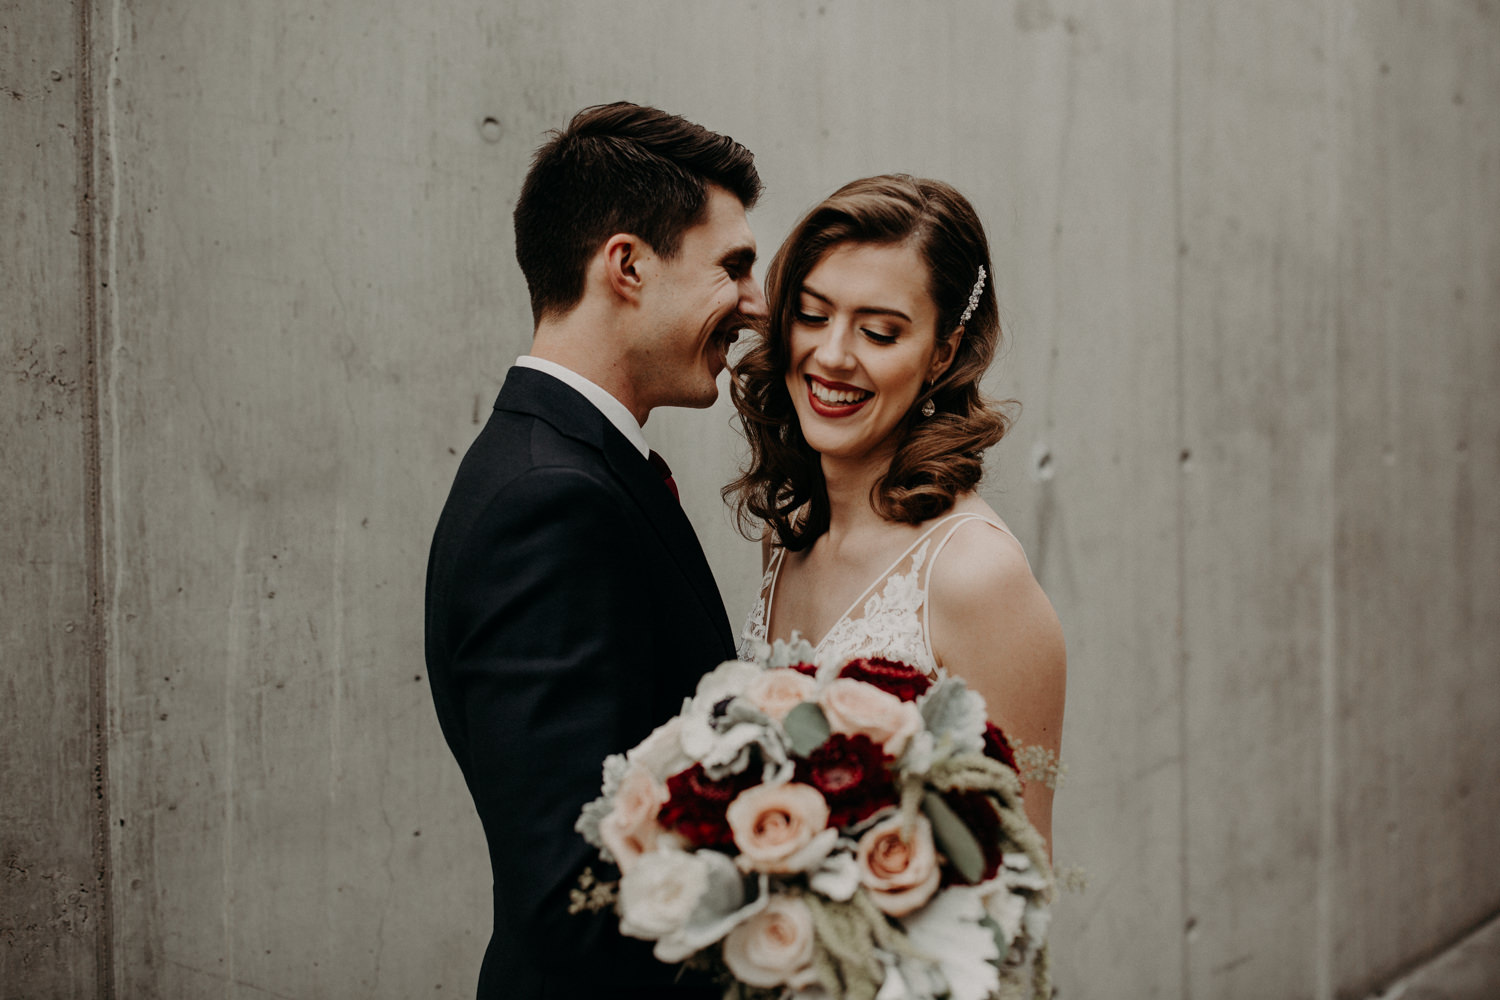 A candid photograph of a happy couple at the parking garage on the campus of SAIT; the groom whispers something sweet into the brides ear and she is smiling.